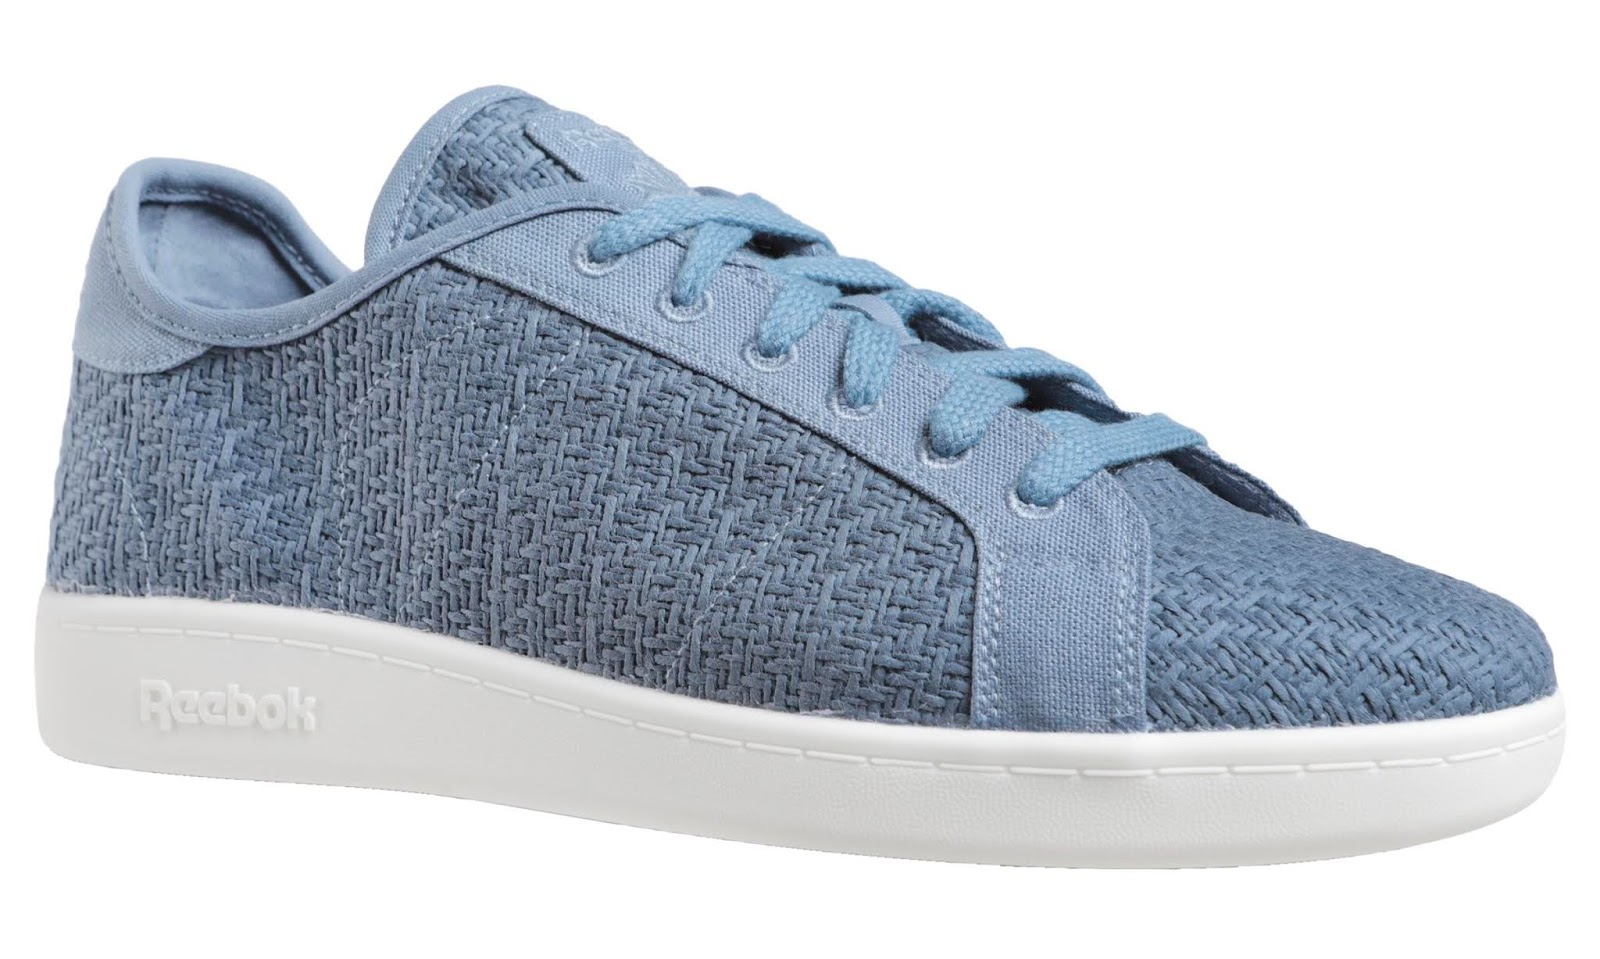 Modelo azul de zapatillas Reebok Cotton Corn